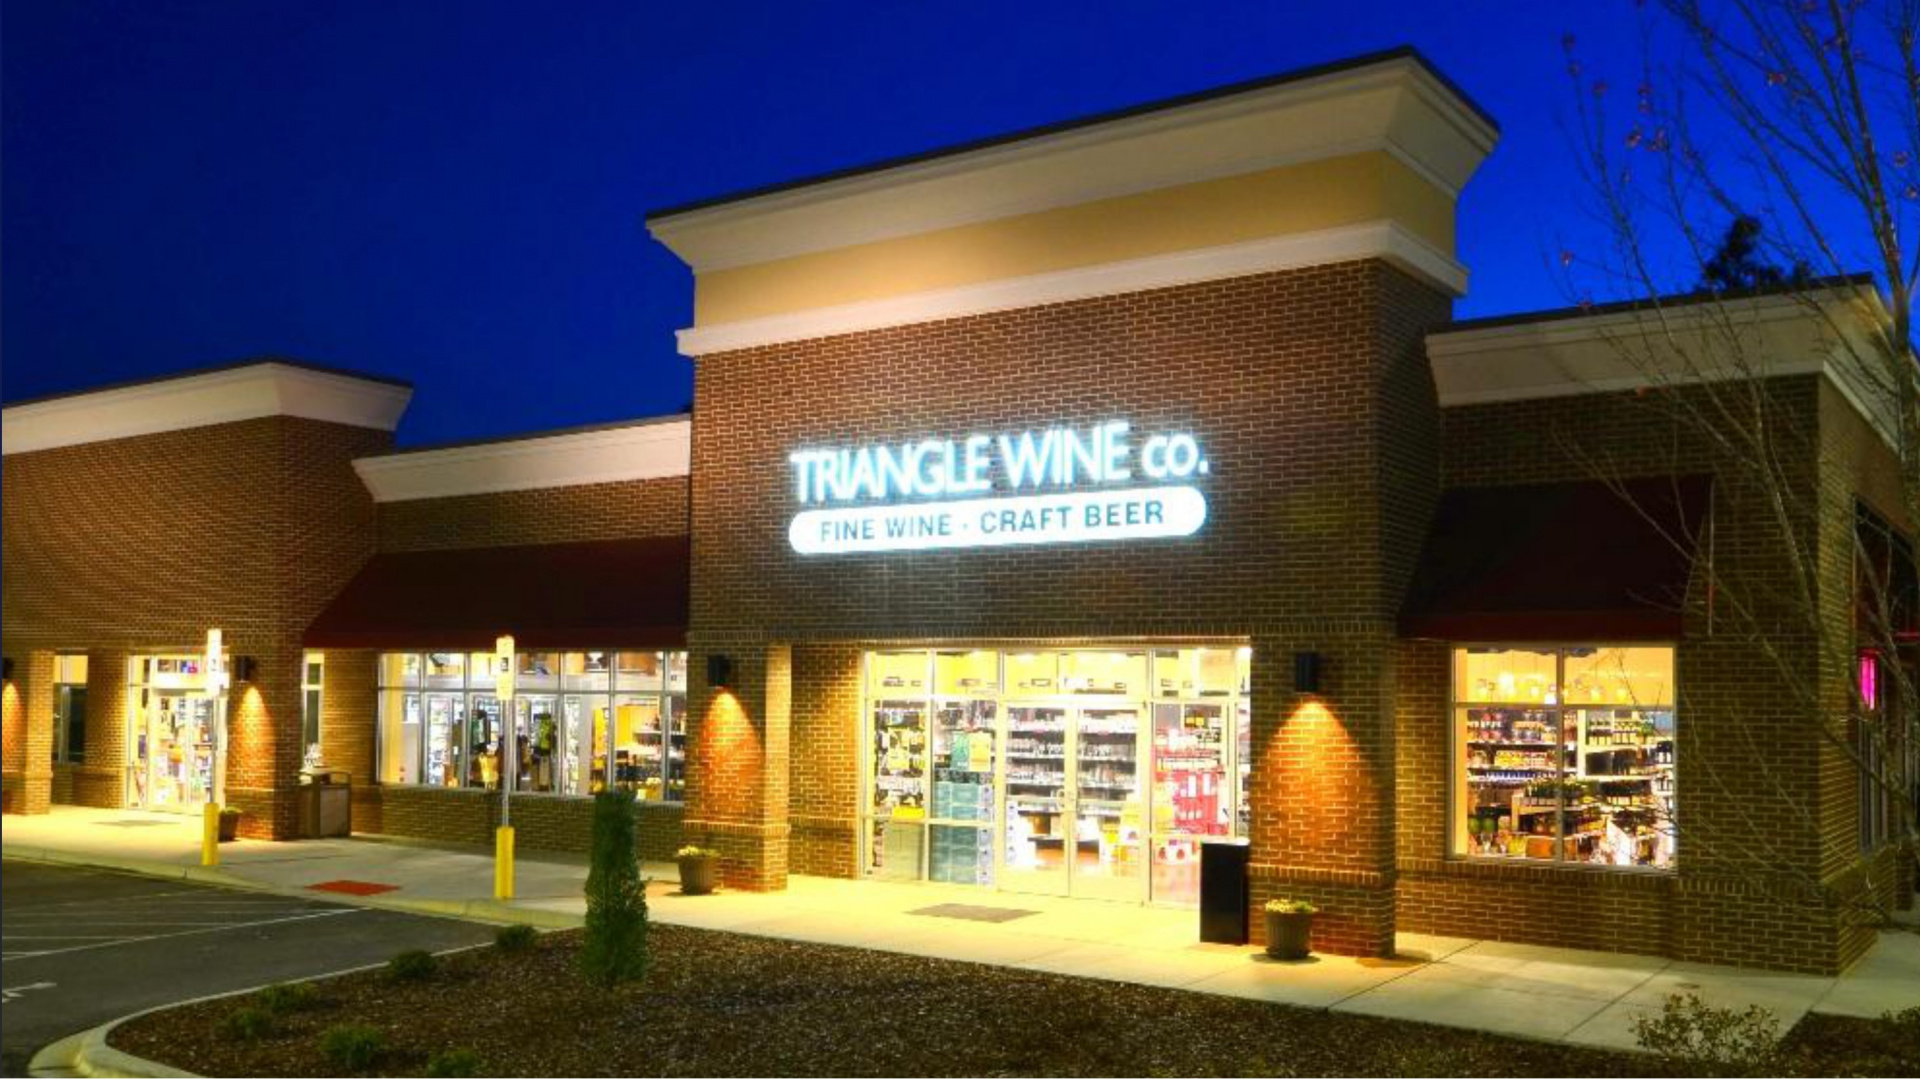 Triangle Wine Company Southern Pines, North Carolina Wine Beer Store Pinehurst